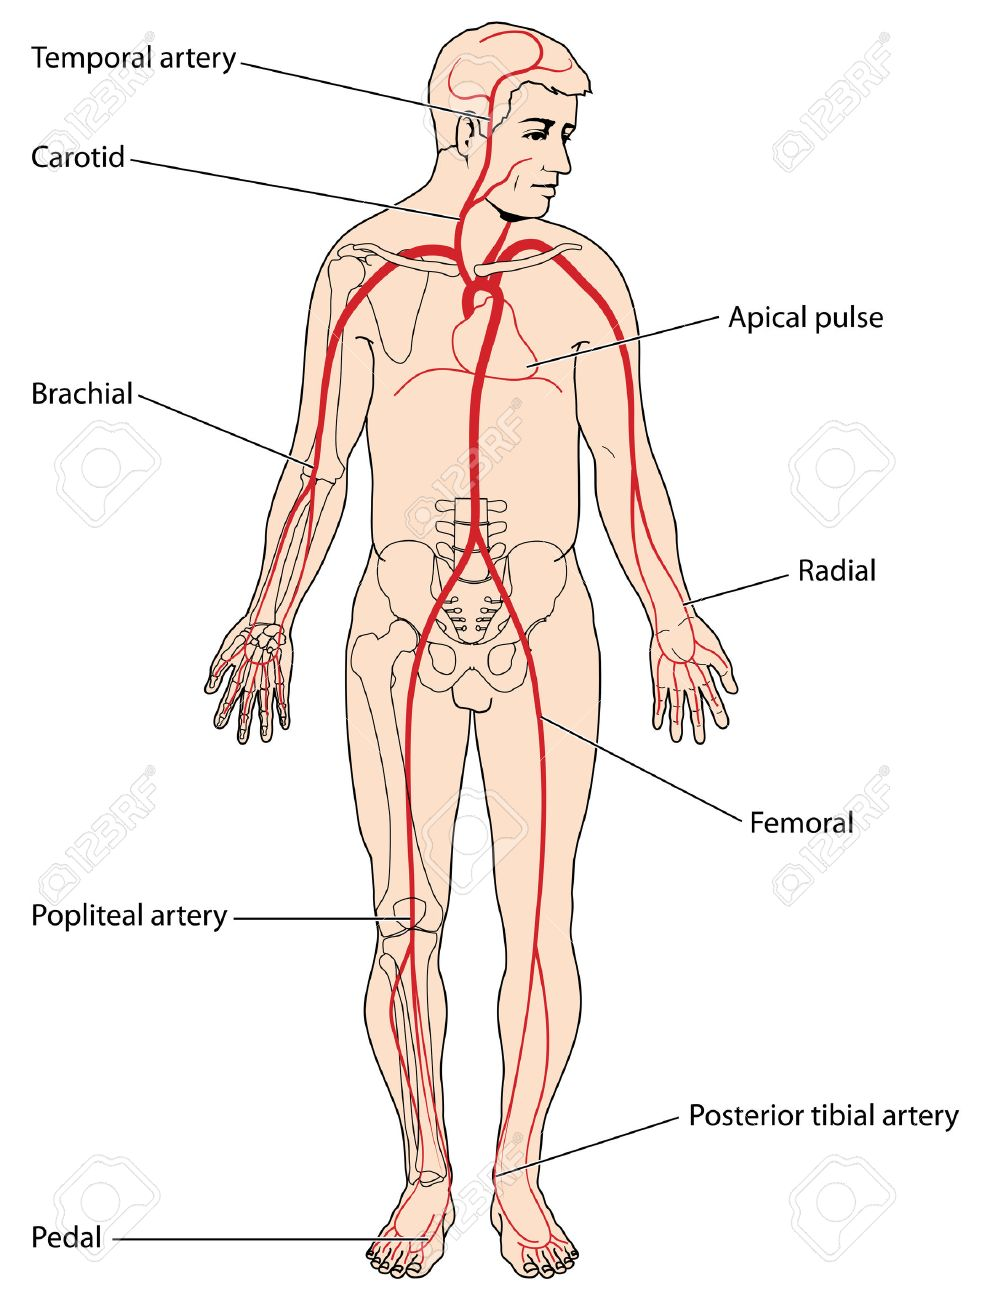 The Major Arteries And Pulse Points Of The Head, Arms And Legs ...